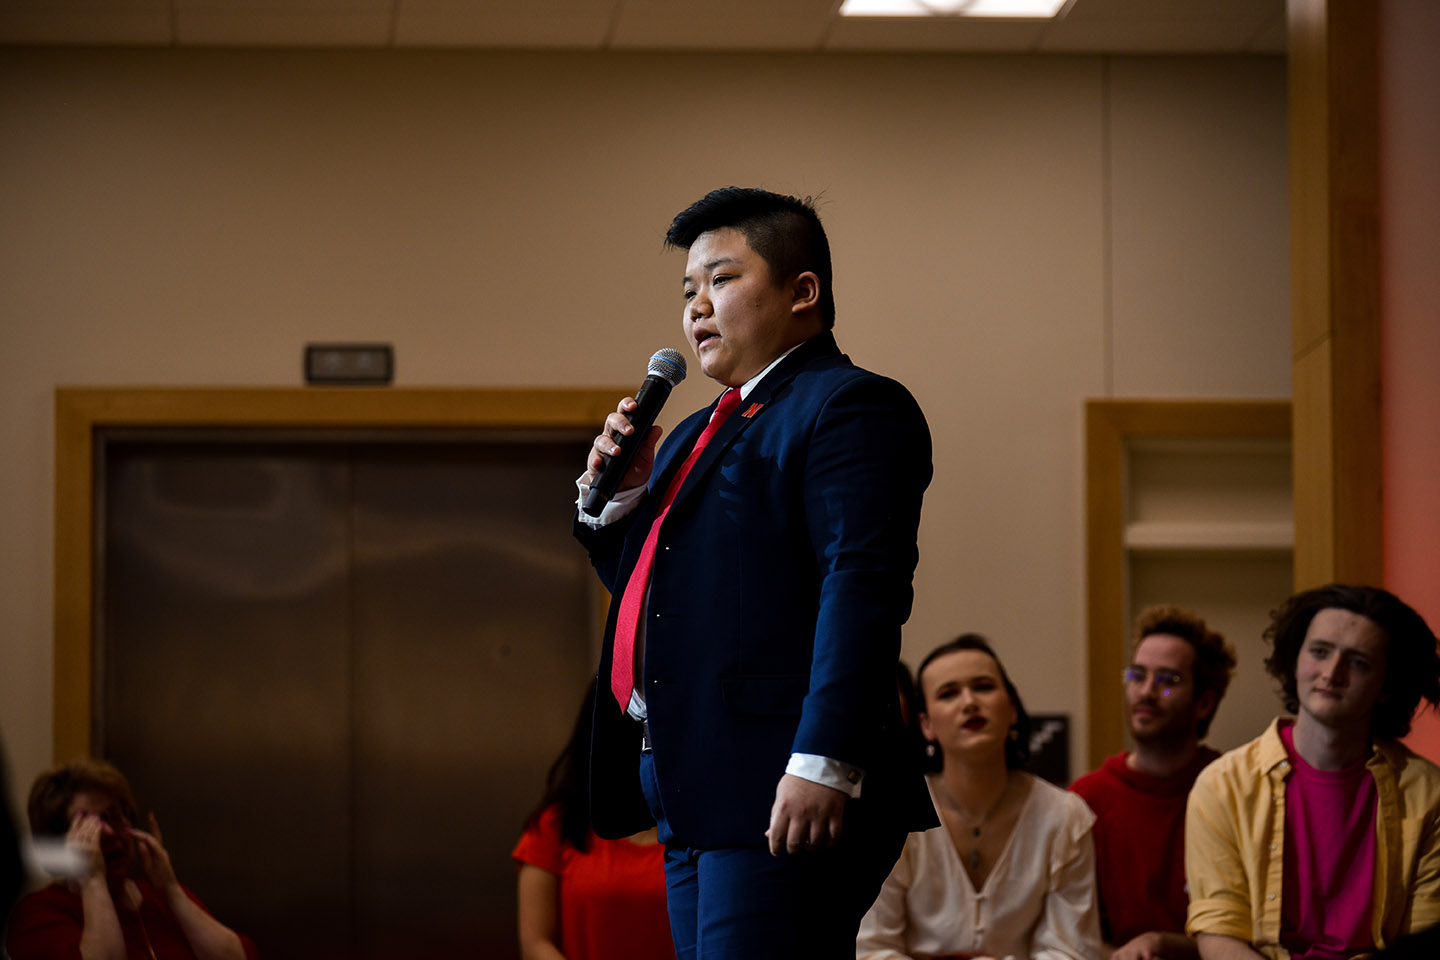 Nguyen Takes the Stage for Transgender People